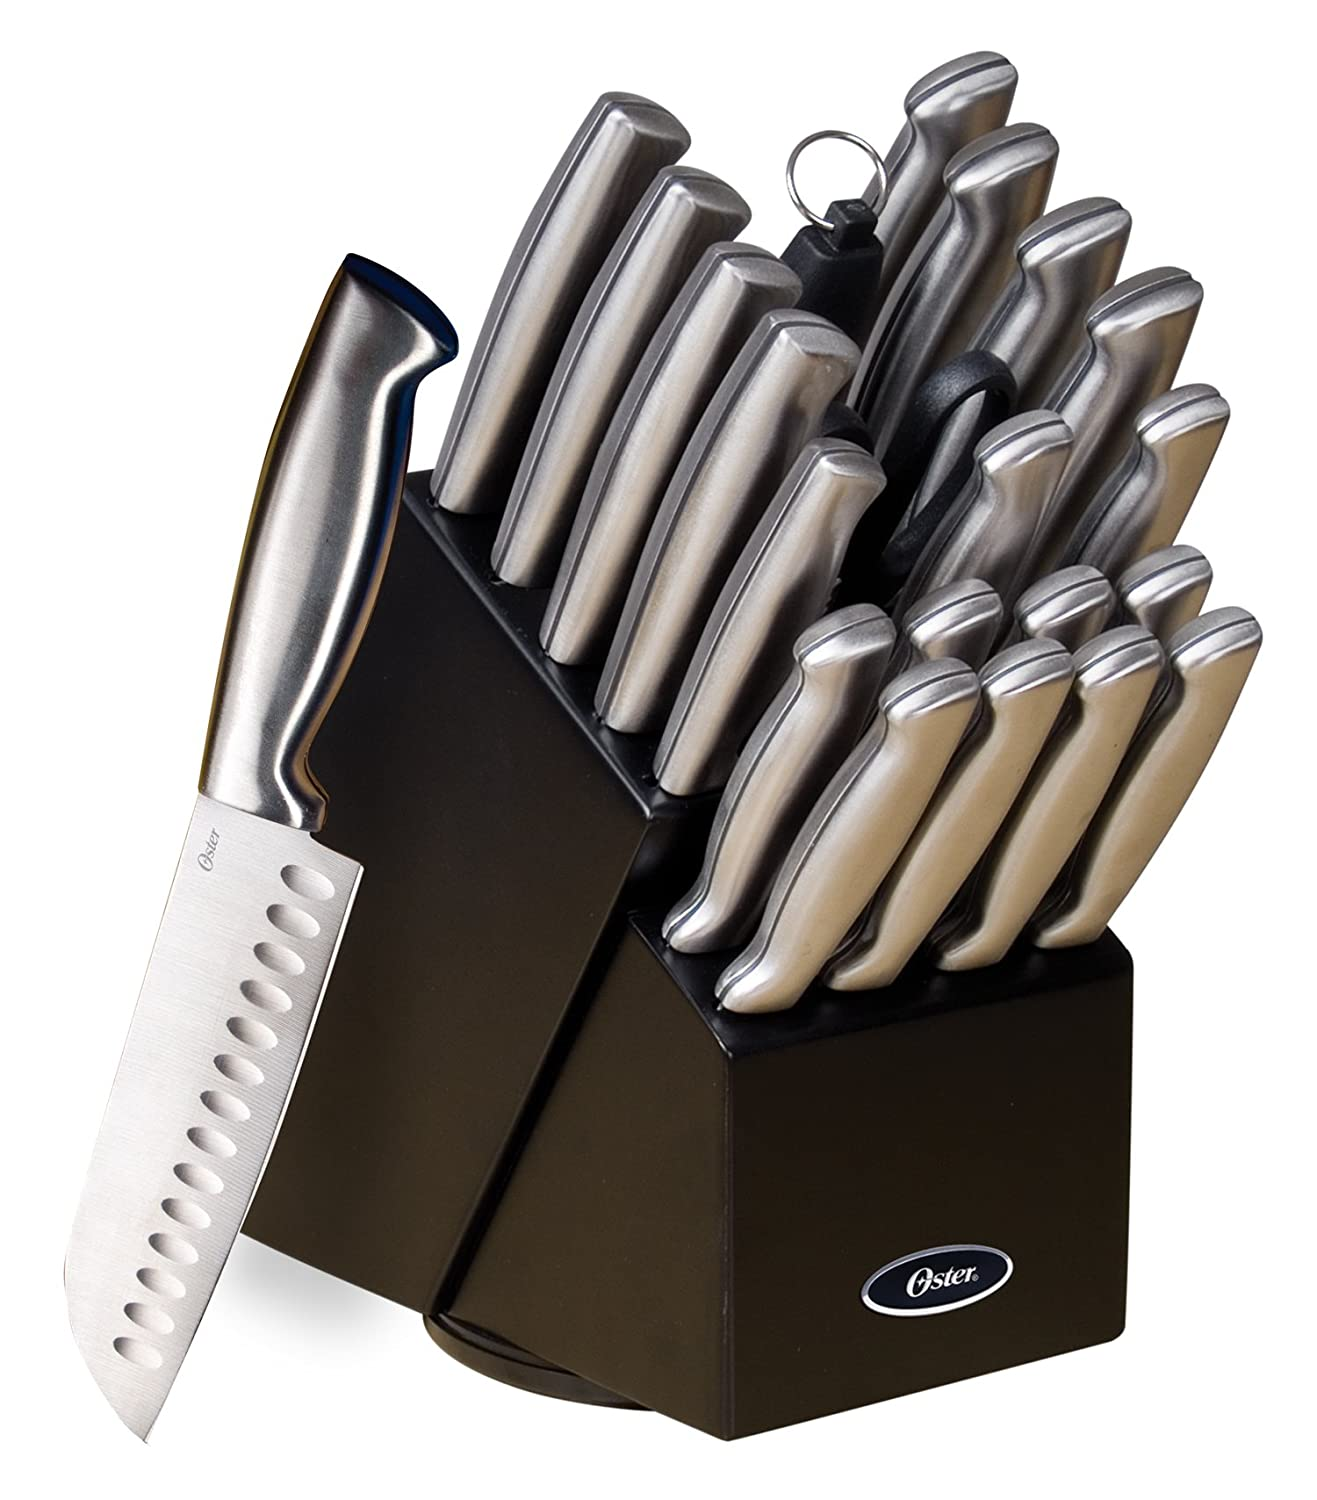 Oster 70562.22 Baldwyn 22-Piece Cutlery Block Set, Brushed Satin